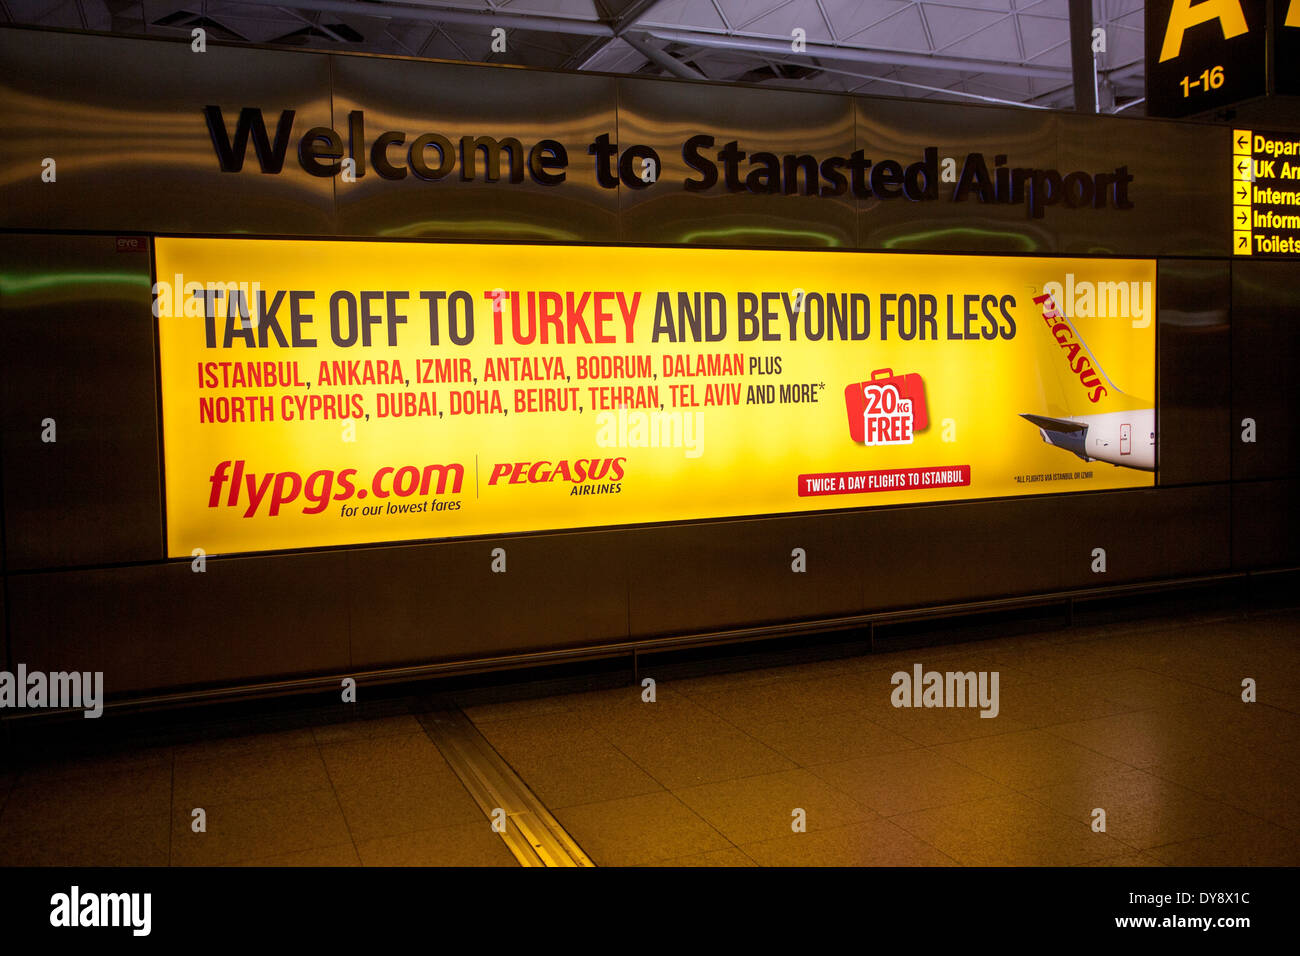 Electronic display advertising for Pegasus airlines flights to Turkey, Stansted airport, Essex, England - Stock Image